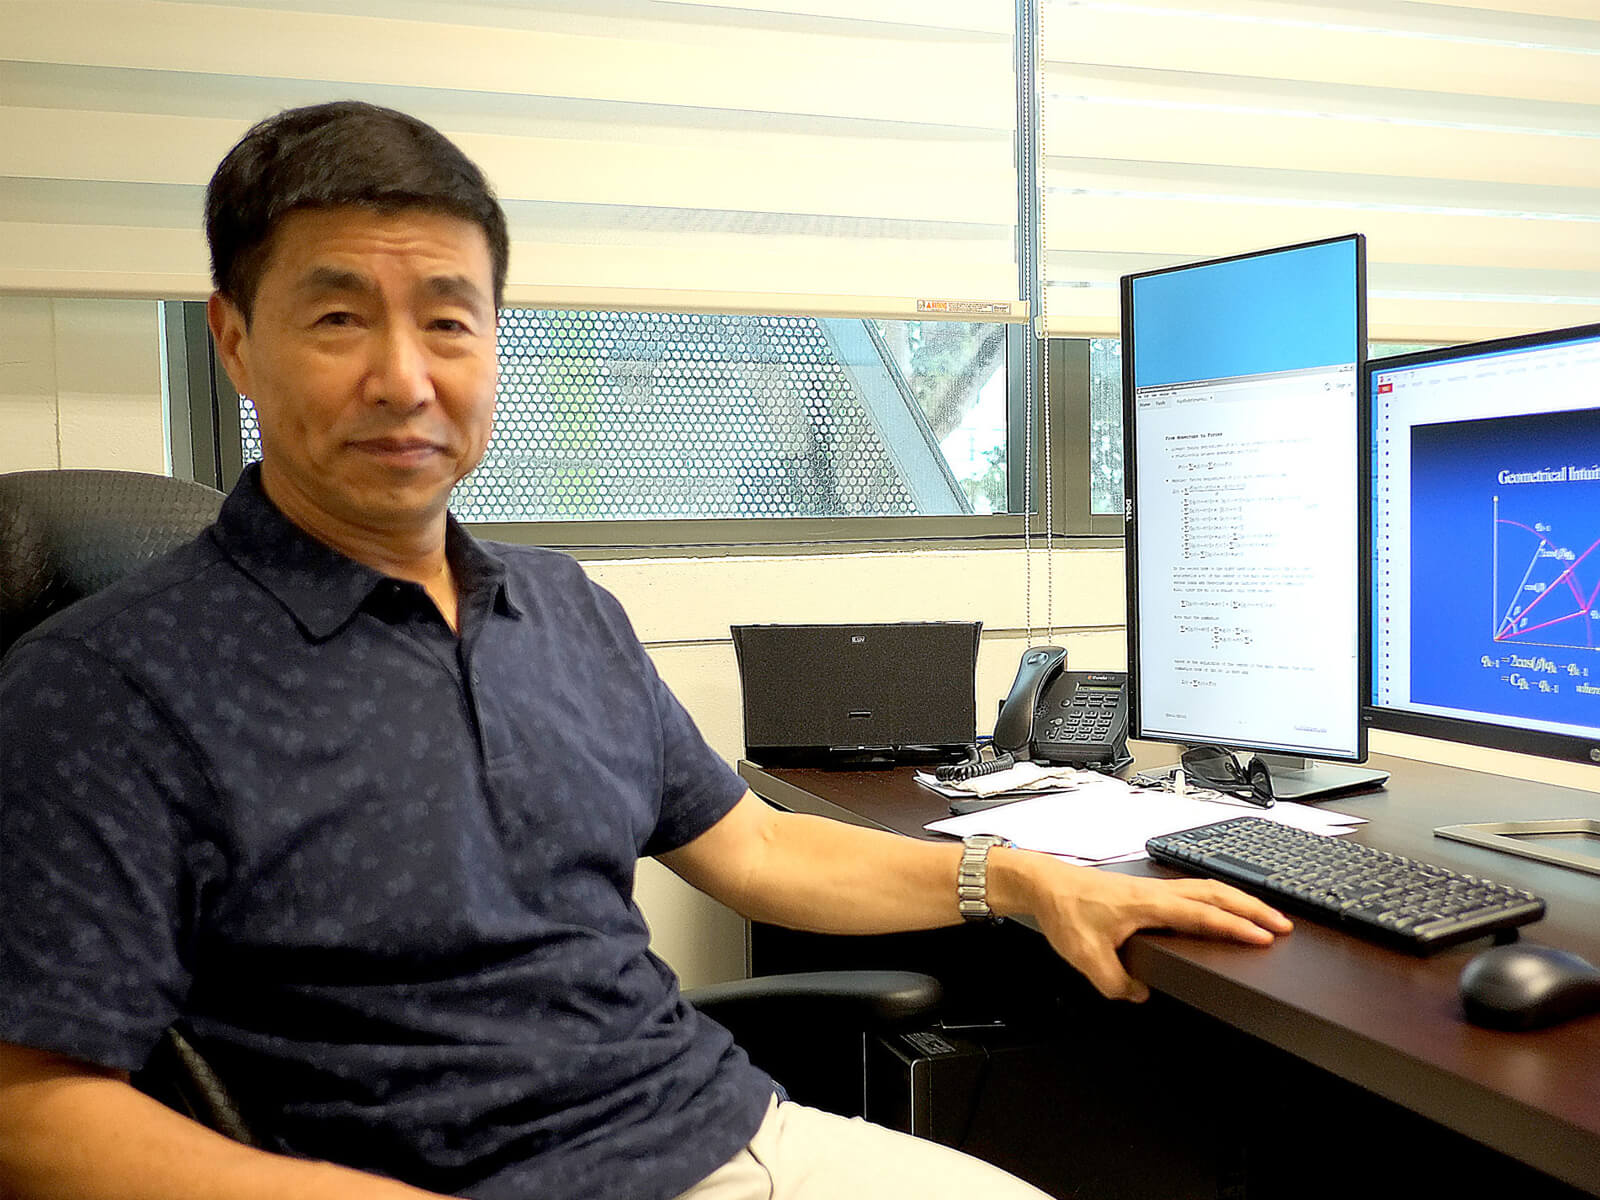 Dr. Xin Li poses for a photo at his desk which has one vertical and one horizontal monitor